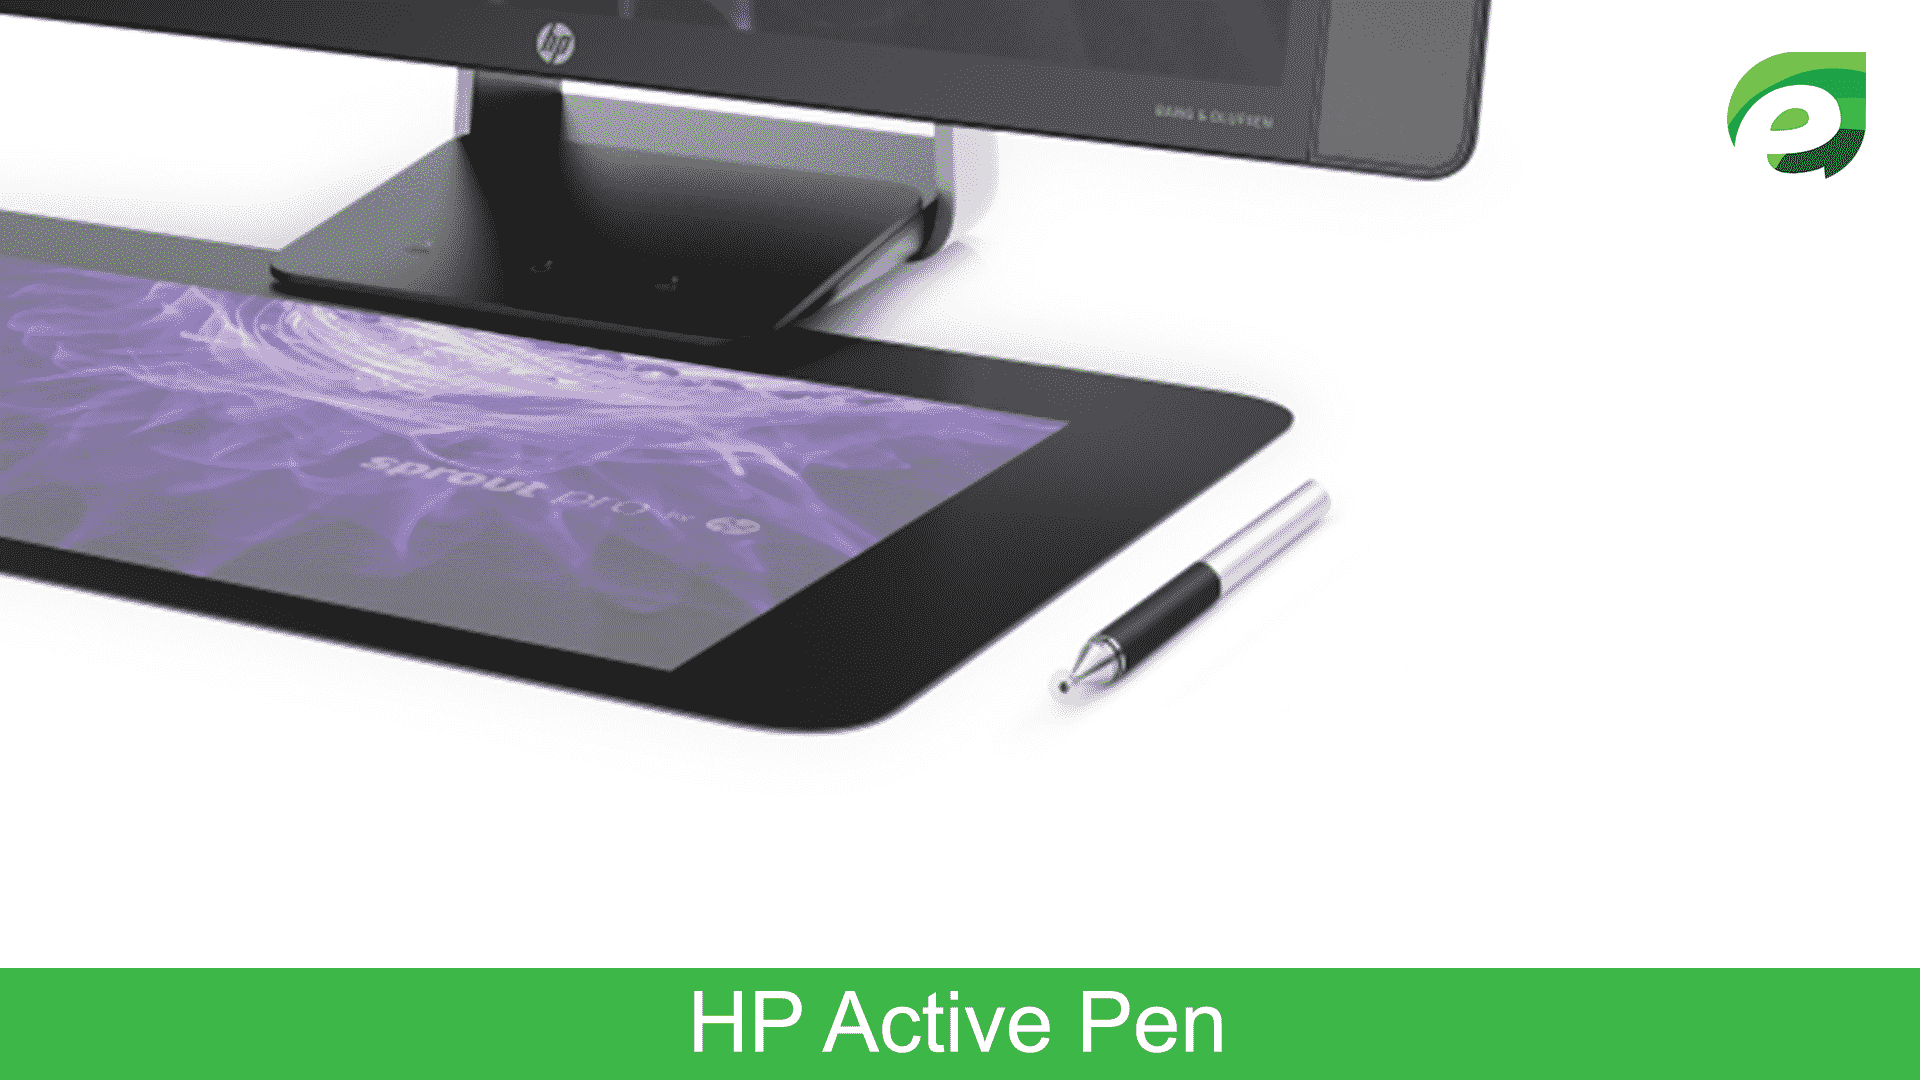 hp sprout G2- active pen